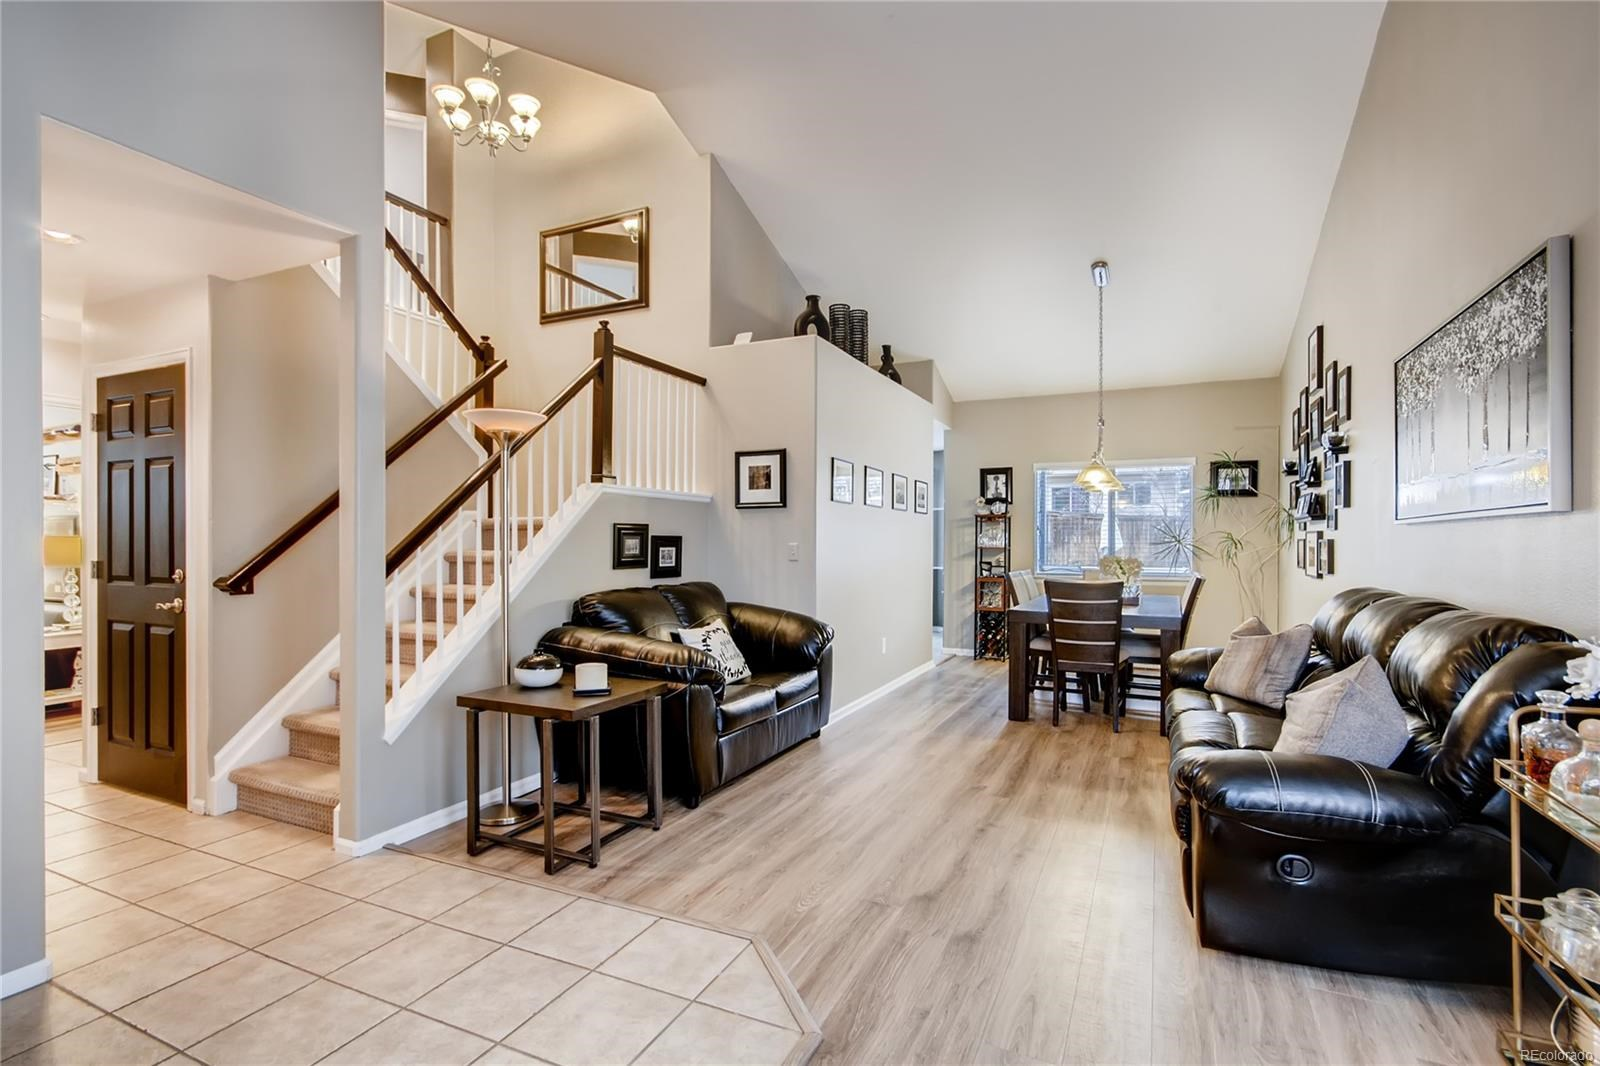 MLS# 8484969 - 11 - 2152 Gold Dust Trail, Highlands Ranch, CO 80129